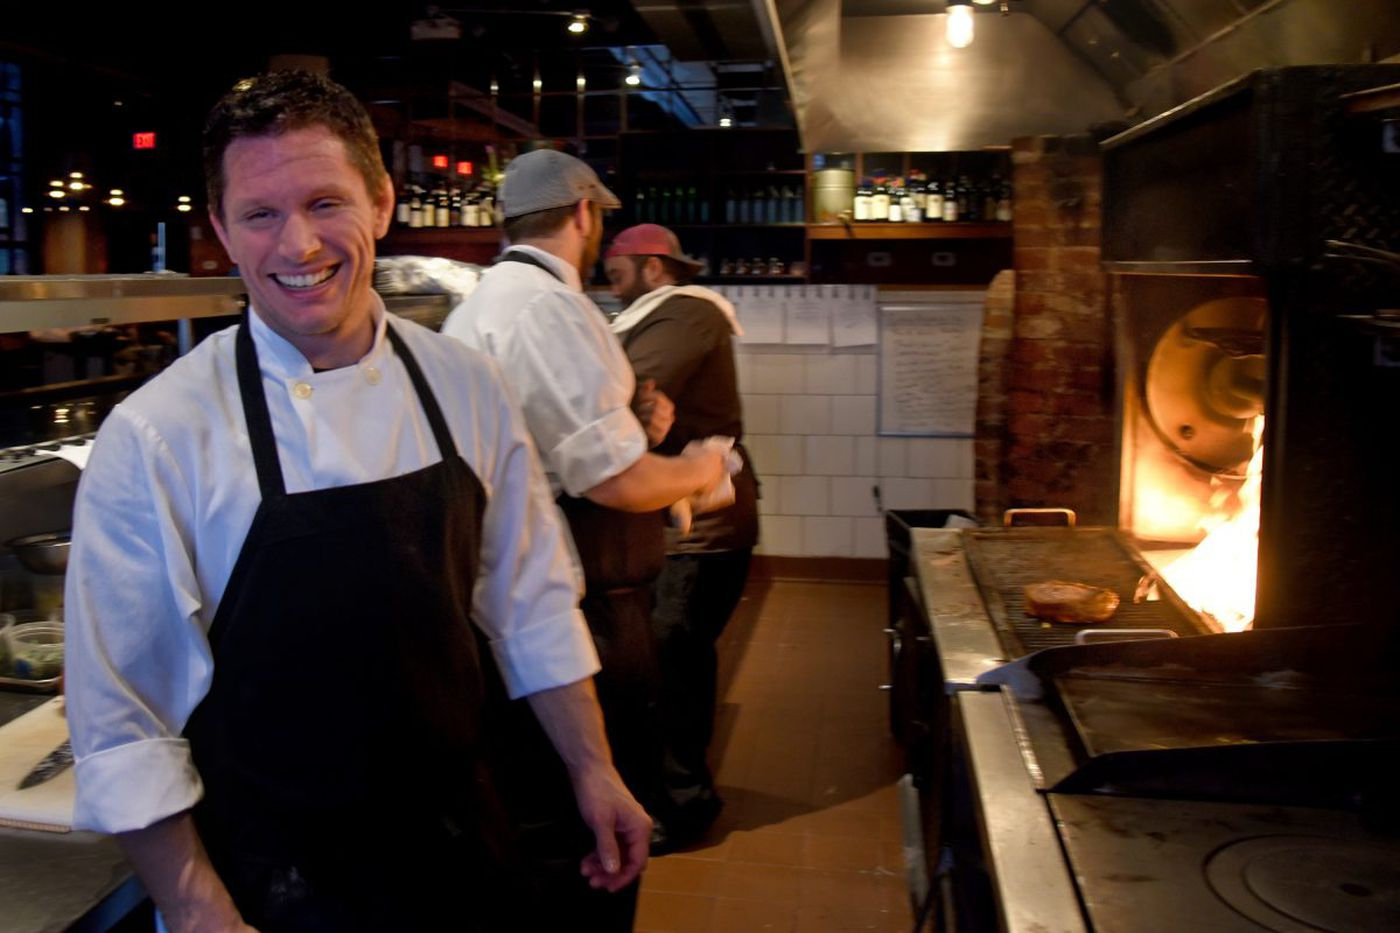 Chef Michaud and restaurateur Schulson to buy Osteria from Urban Outfitters